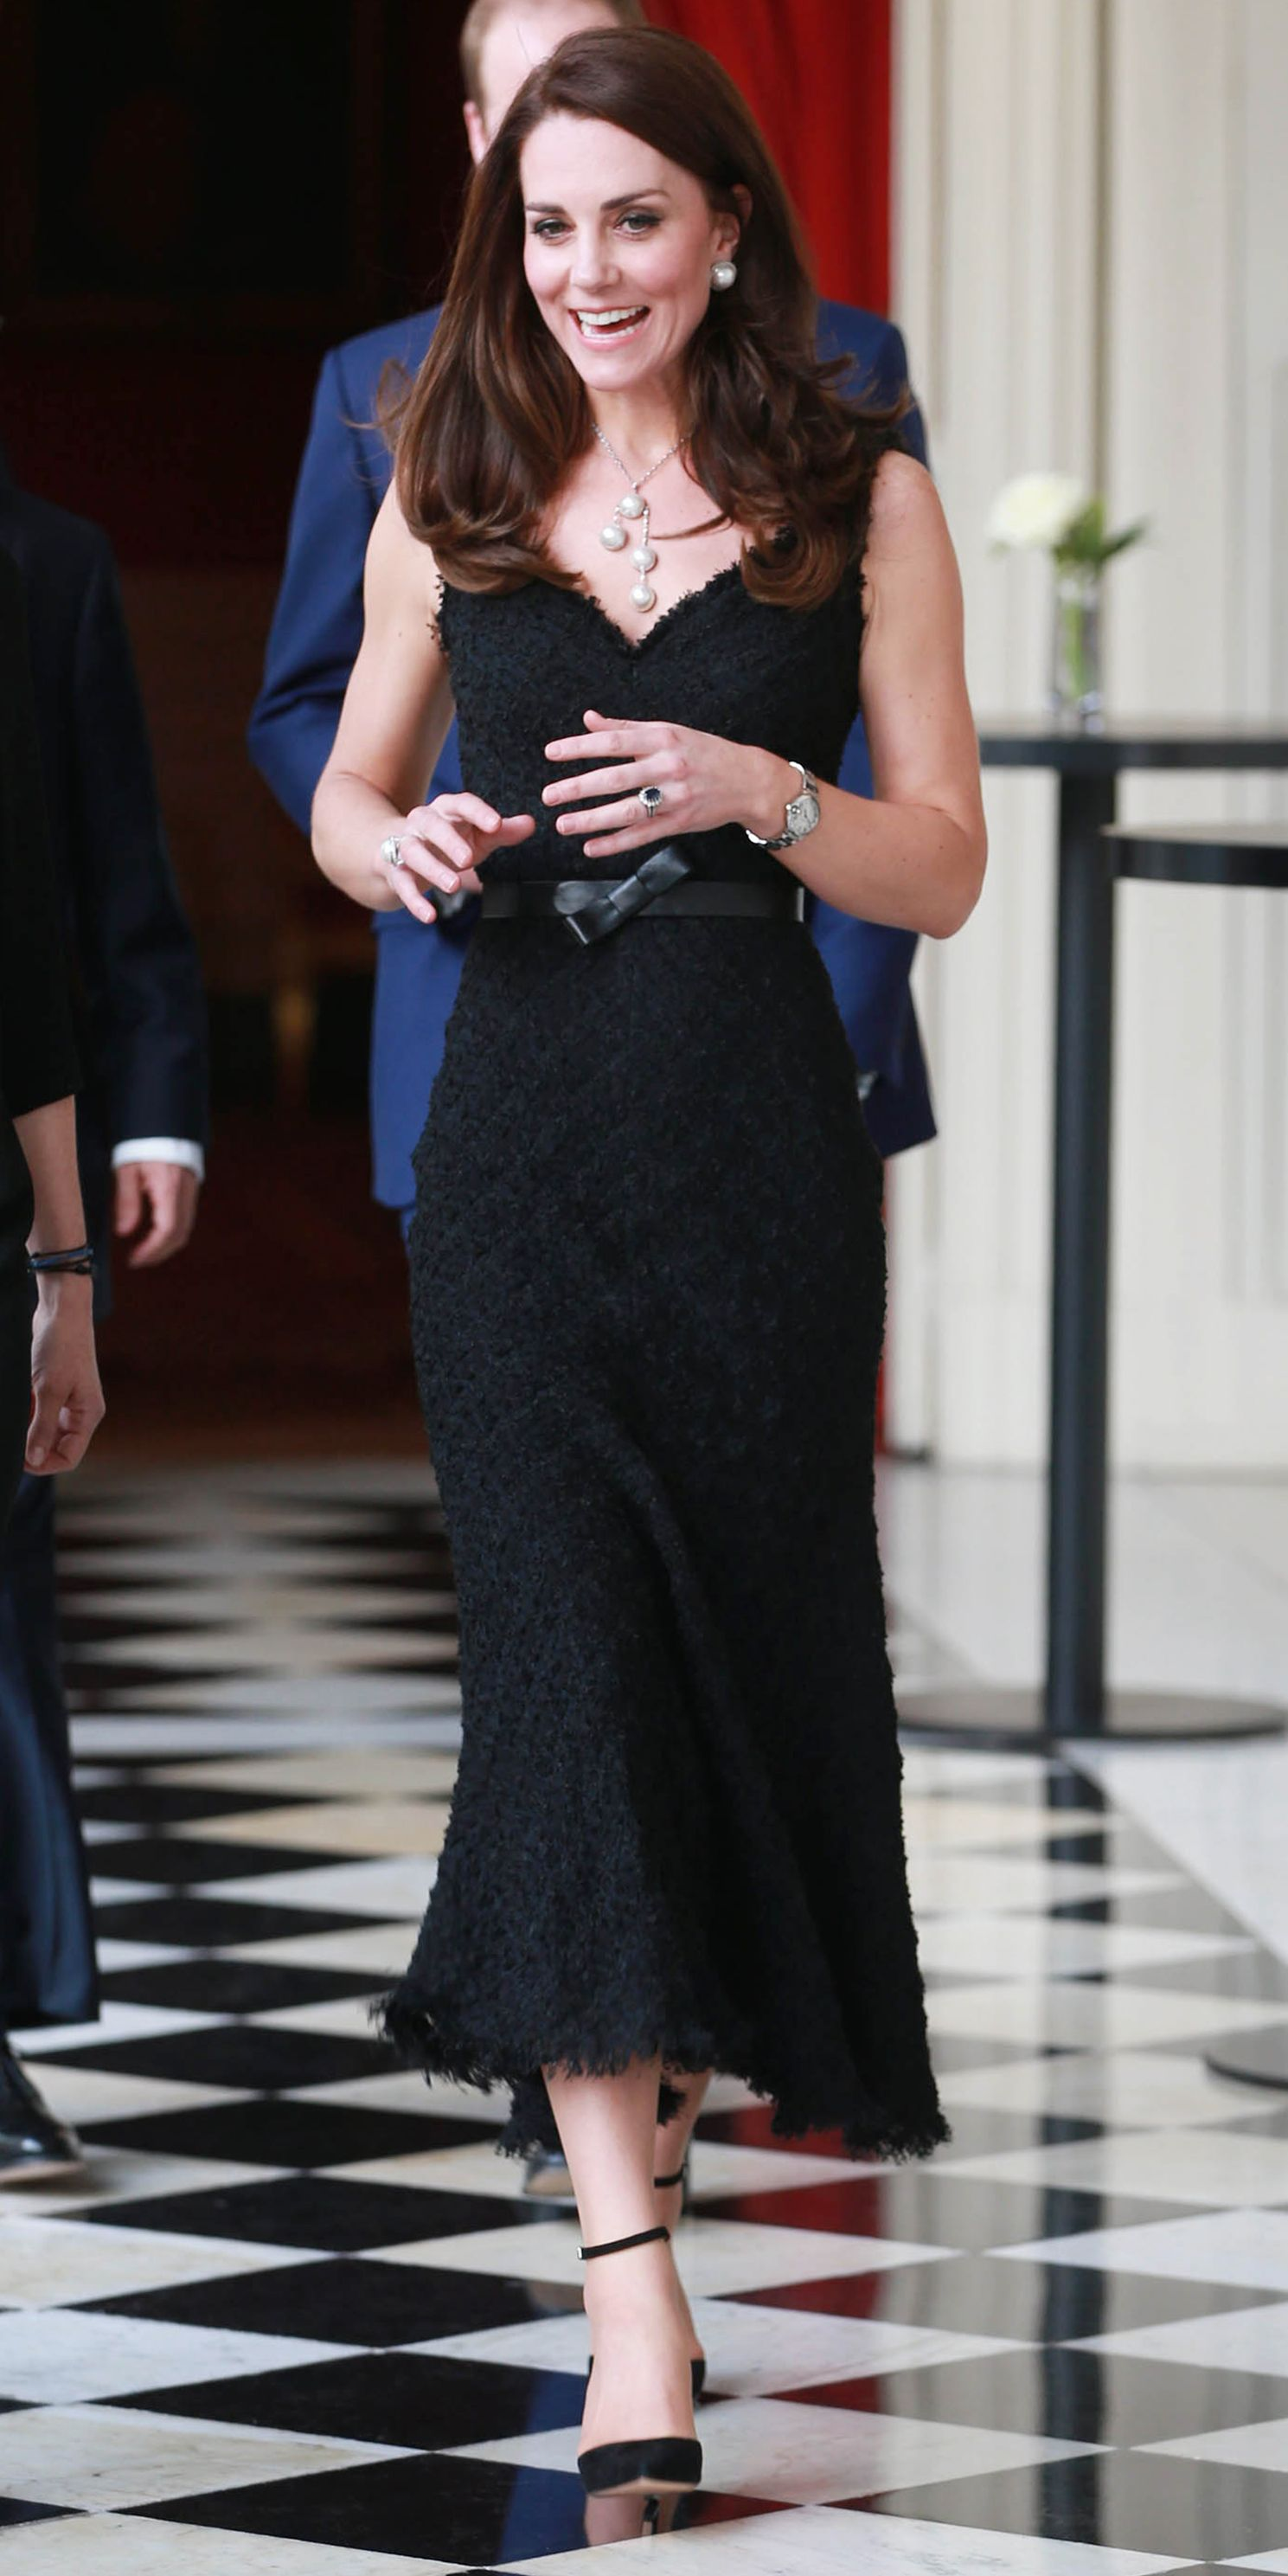 b4362d0bbf6b Kate Middleton's Most Memorable Outfits - March 17, 2017 from InStyle.com  Middleton stunned at a gala in Paris in a textured, mermaid-cut black  Alexander ...